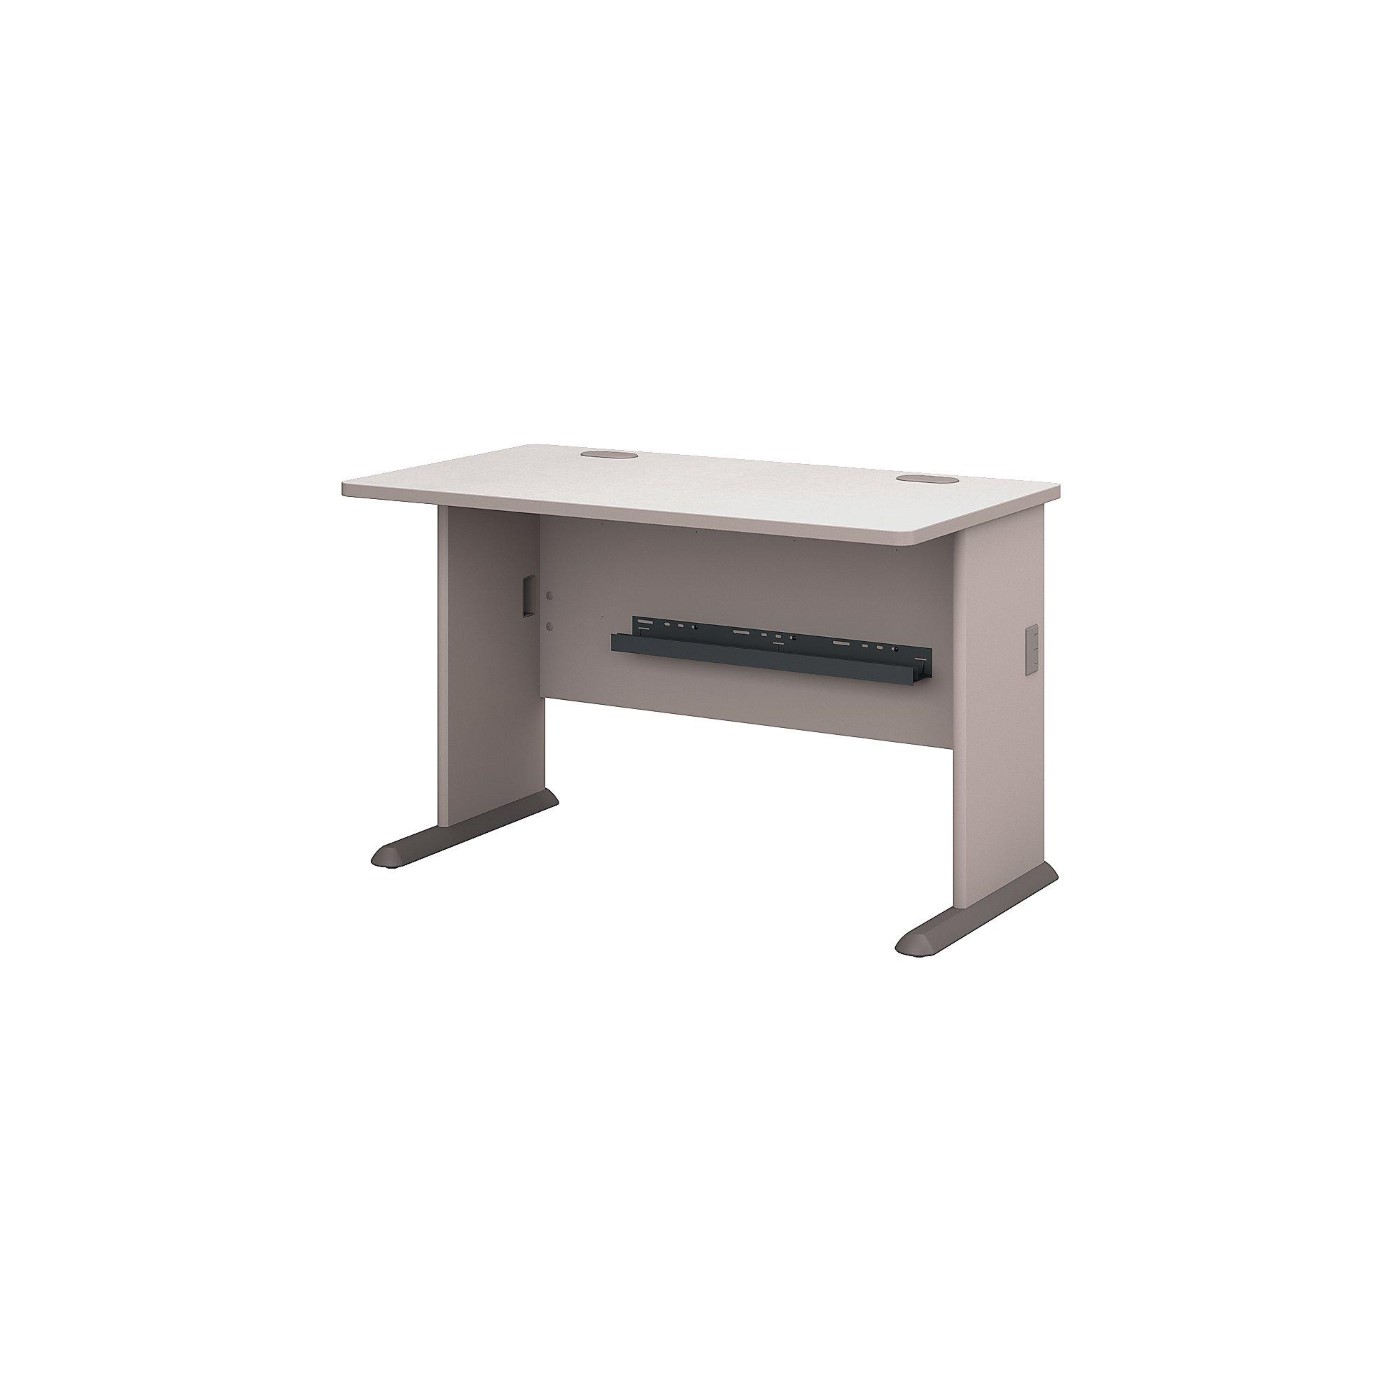 <font color=#c60><b>BUSH BUSINESS FURNITURE SERIES A 48W DESK. FREE SHIPPING</font></b></font></b>